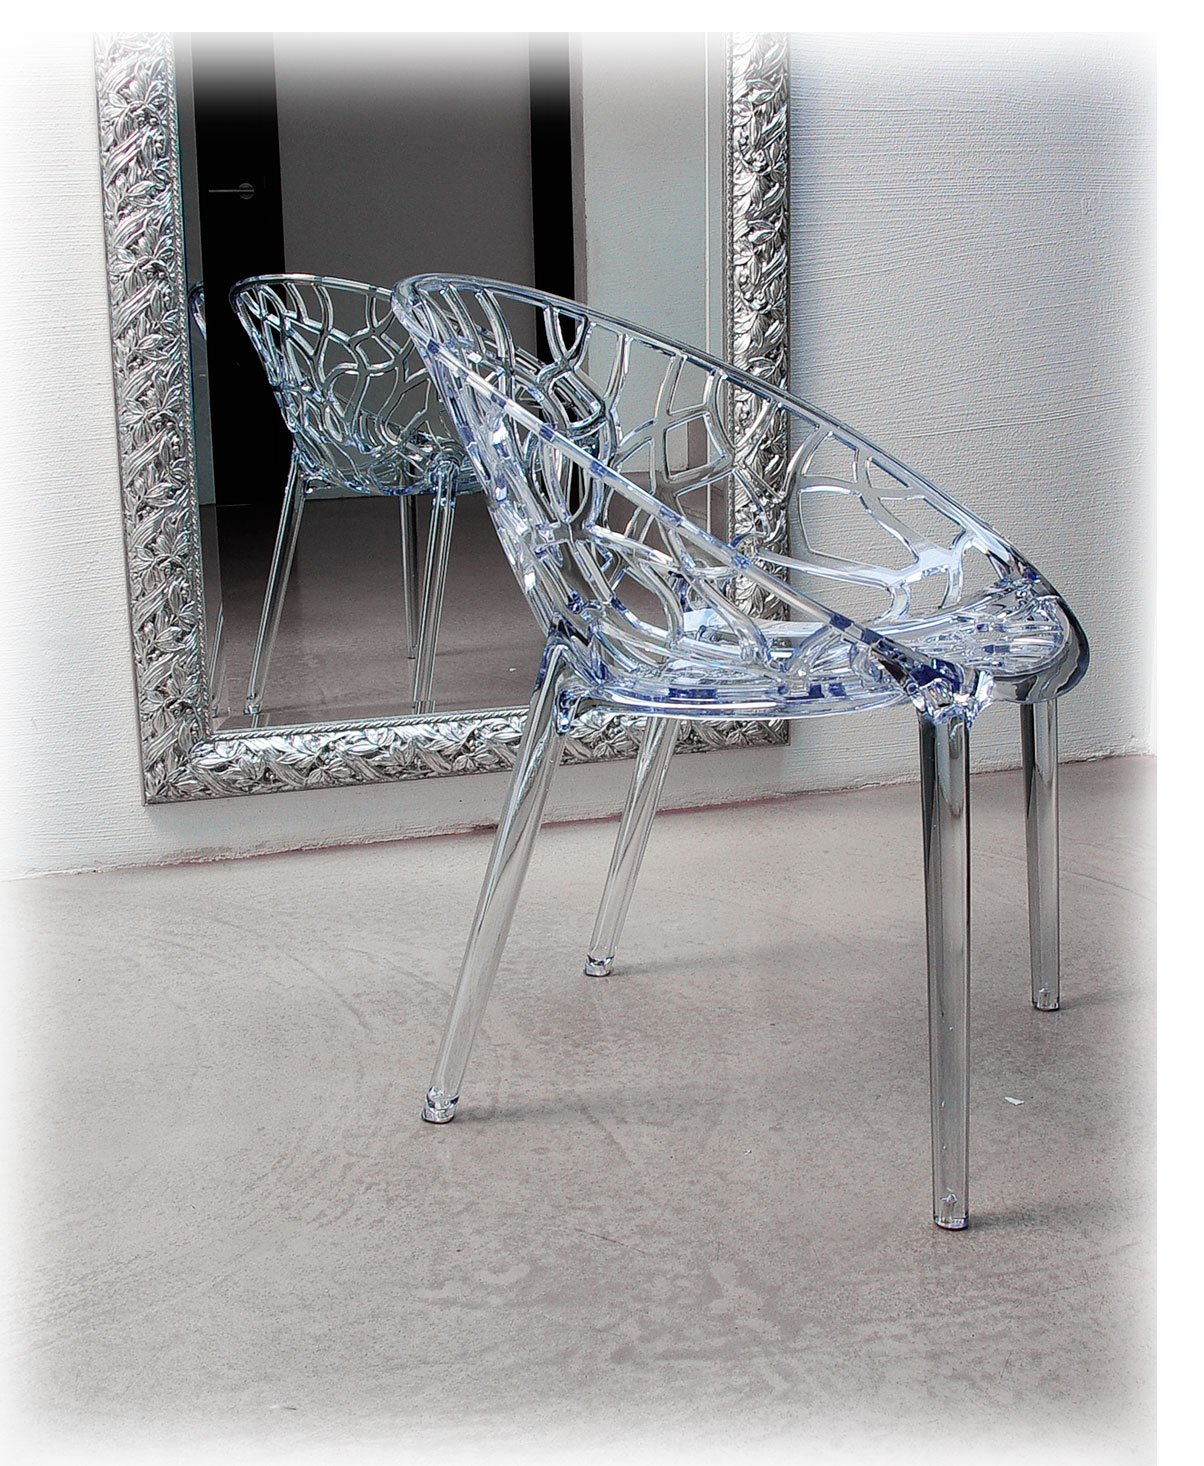 Ghost Chair Armrest Chair plexiglas. Chic Design, High Quality Processing, Comfortable Seated, for Outdoor and Indoors suitable. Illustration in Transparent Clear Fiesta